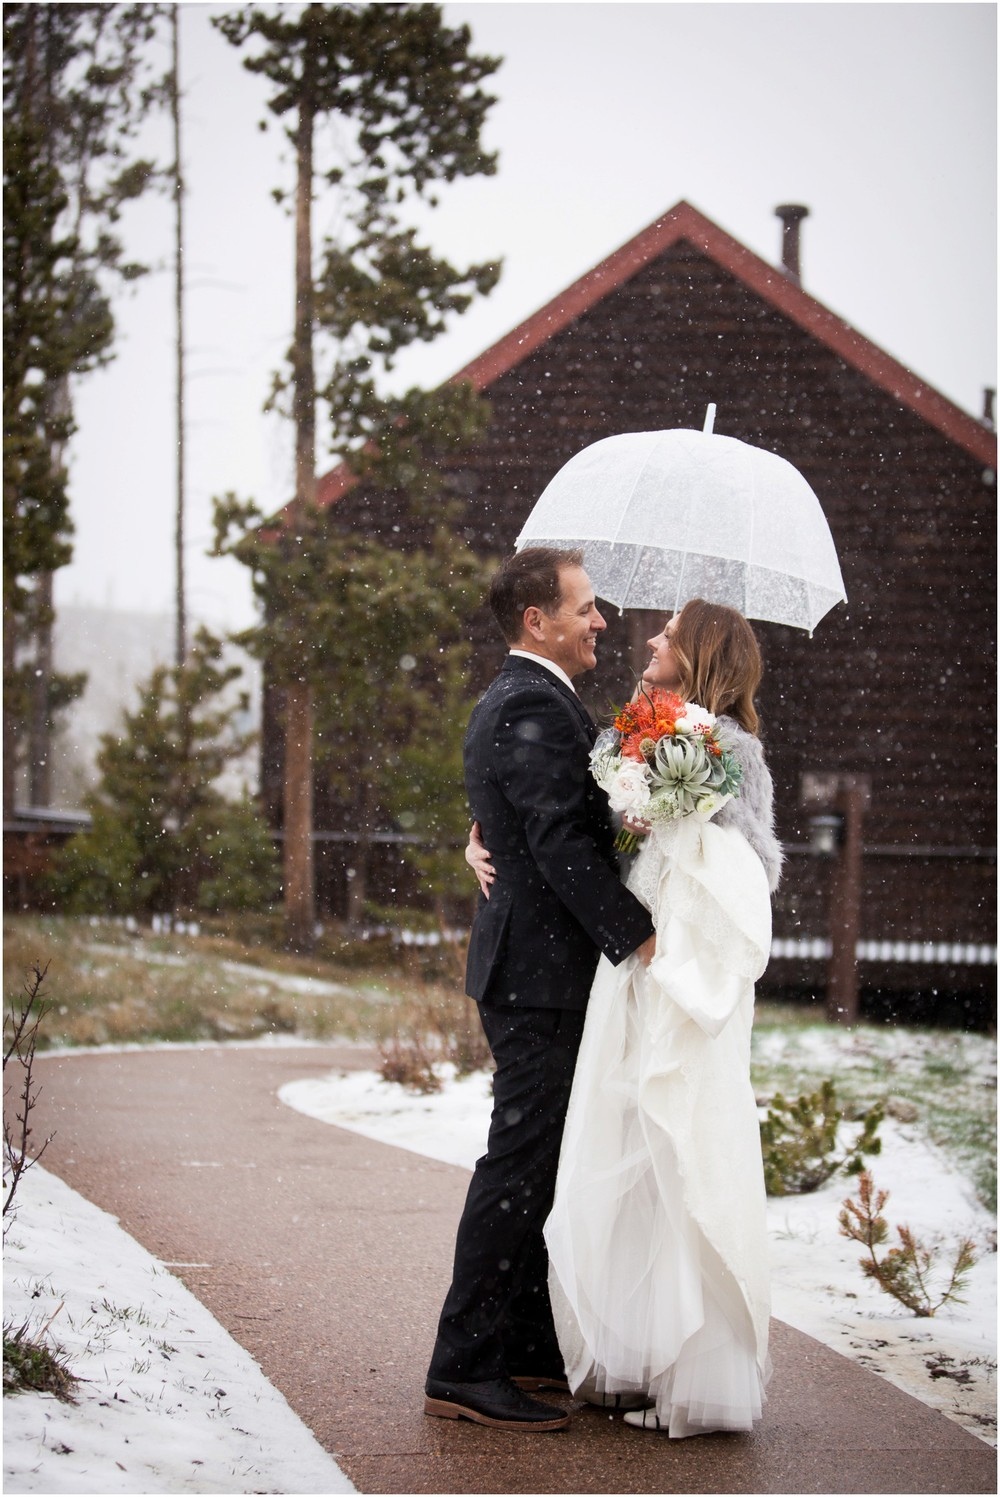 Devils-thumb-ranch-colorado-snowy-wedding-_0024.jpg